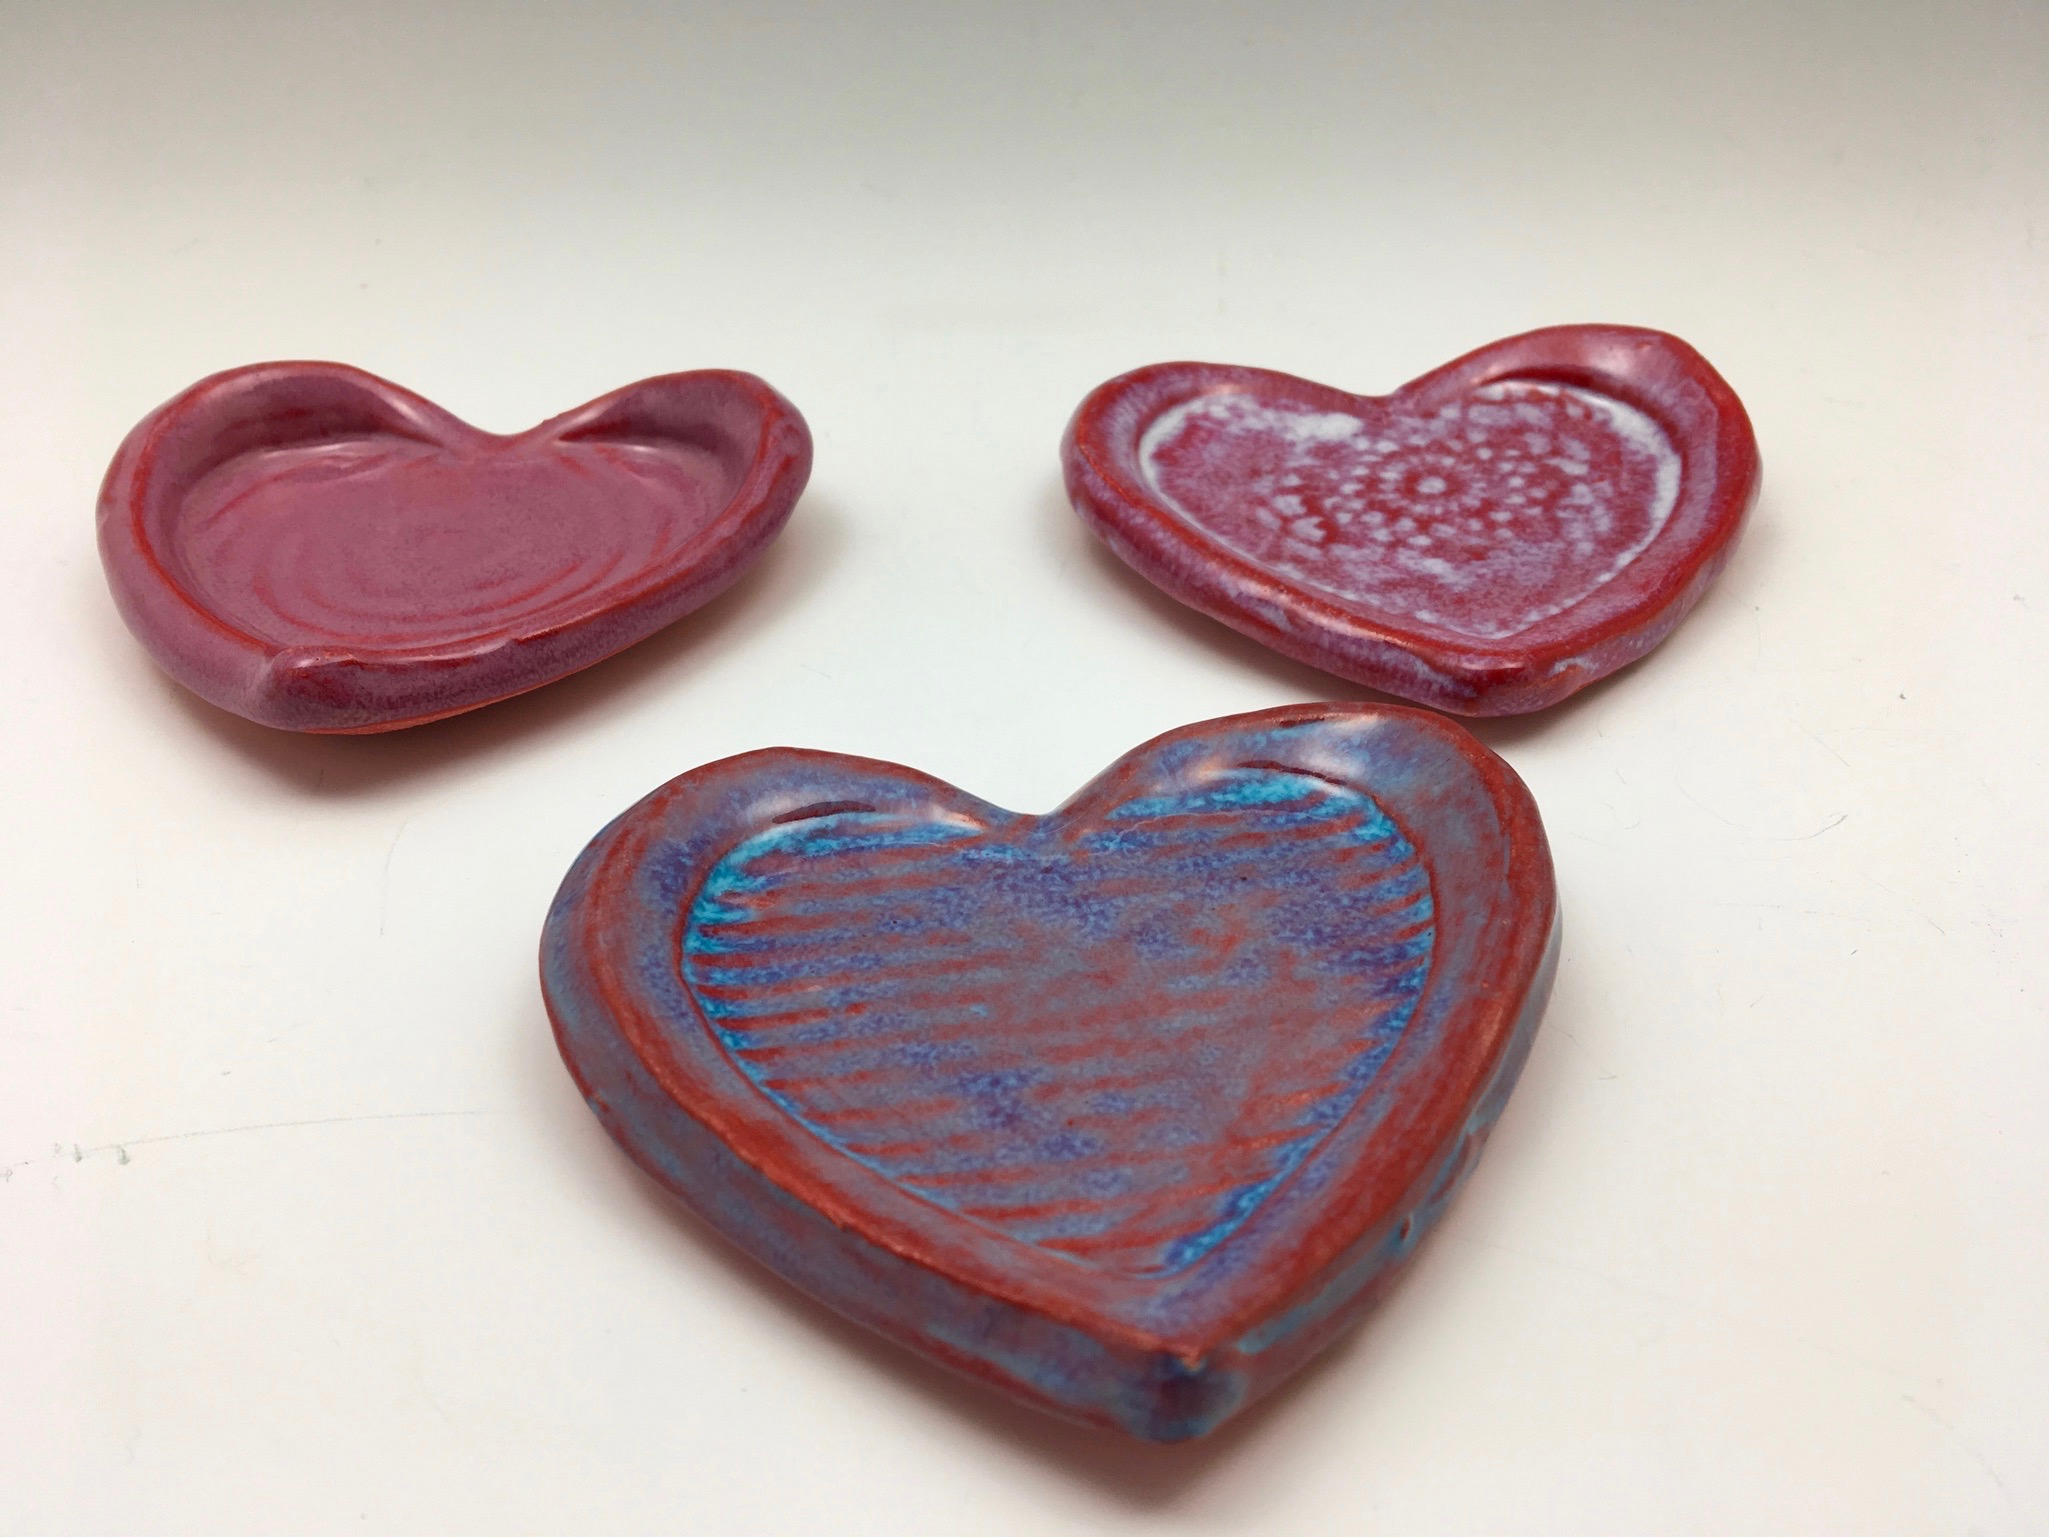 New heart shapes are stacking up in the studio in anticipation of Valentines Day! Reserve one for yourself or a loved-one by clicking on this photo!